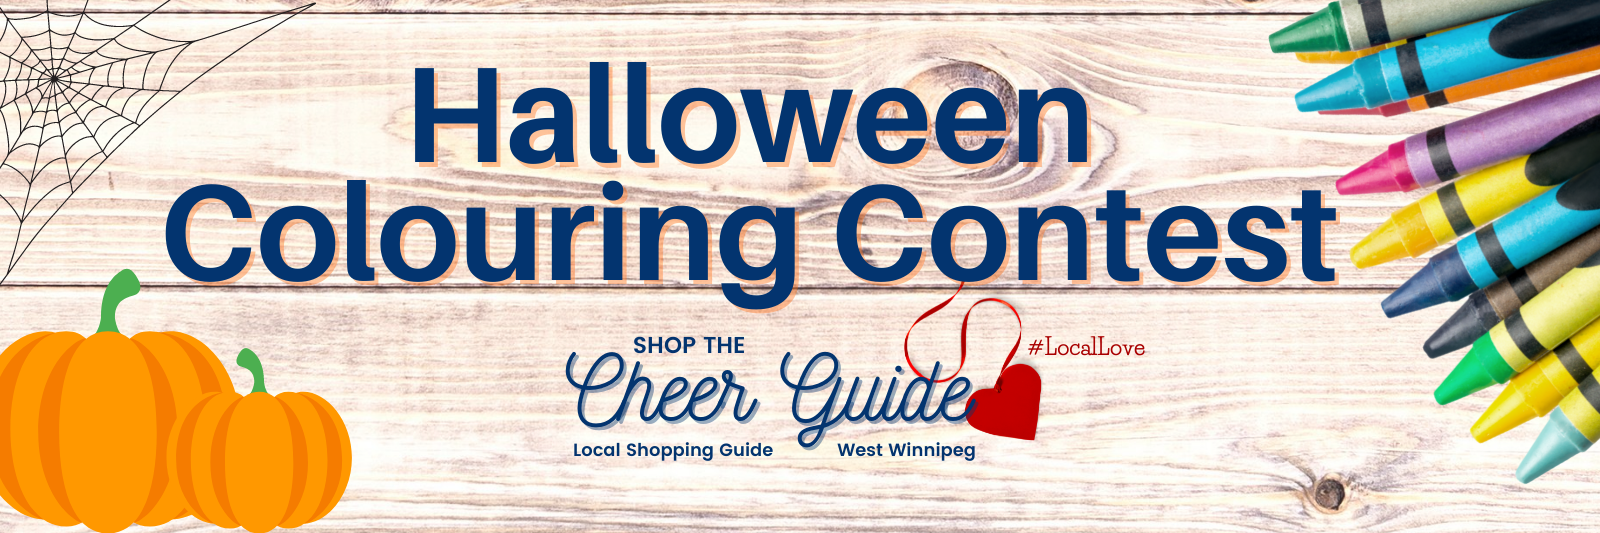 CheerHere_Banner_HalloweenColouringContest2021-(Instagram-Story)-(1600-x-533-px).png